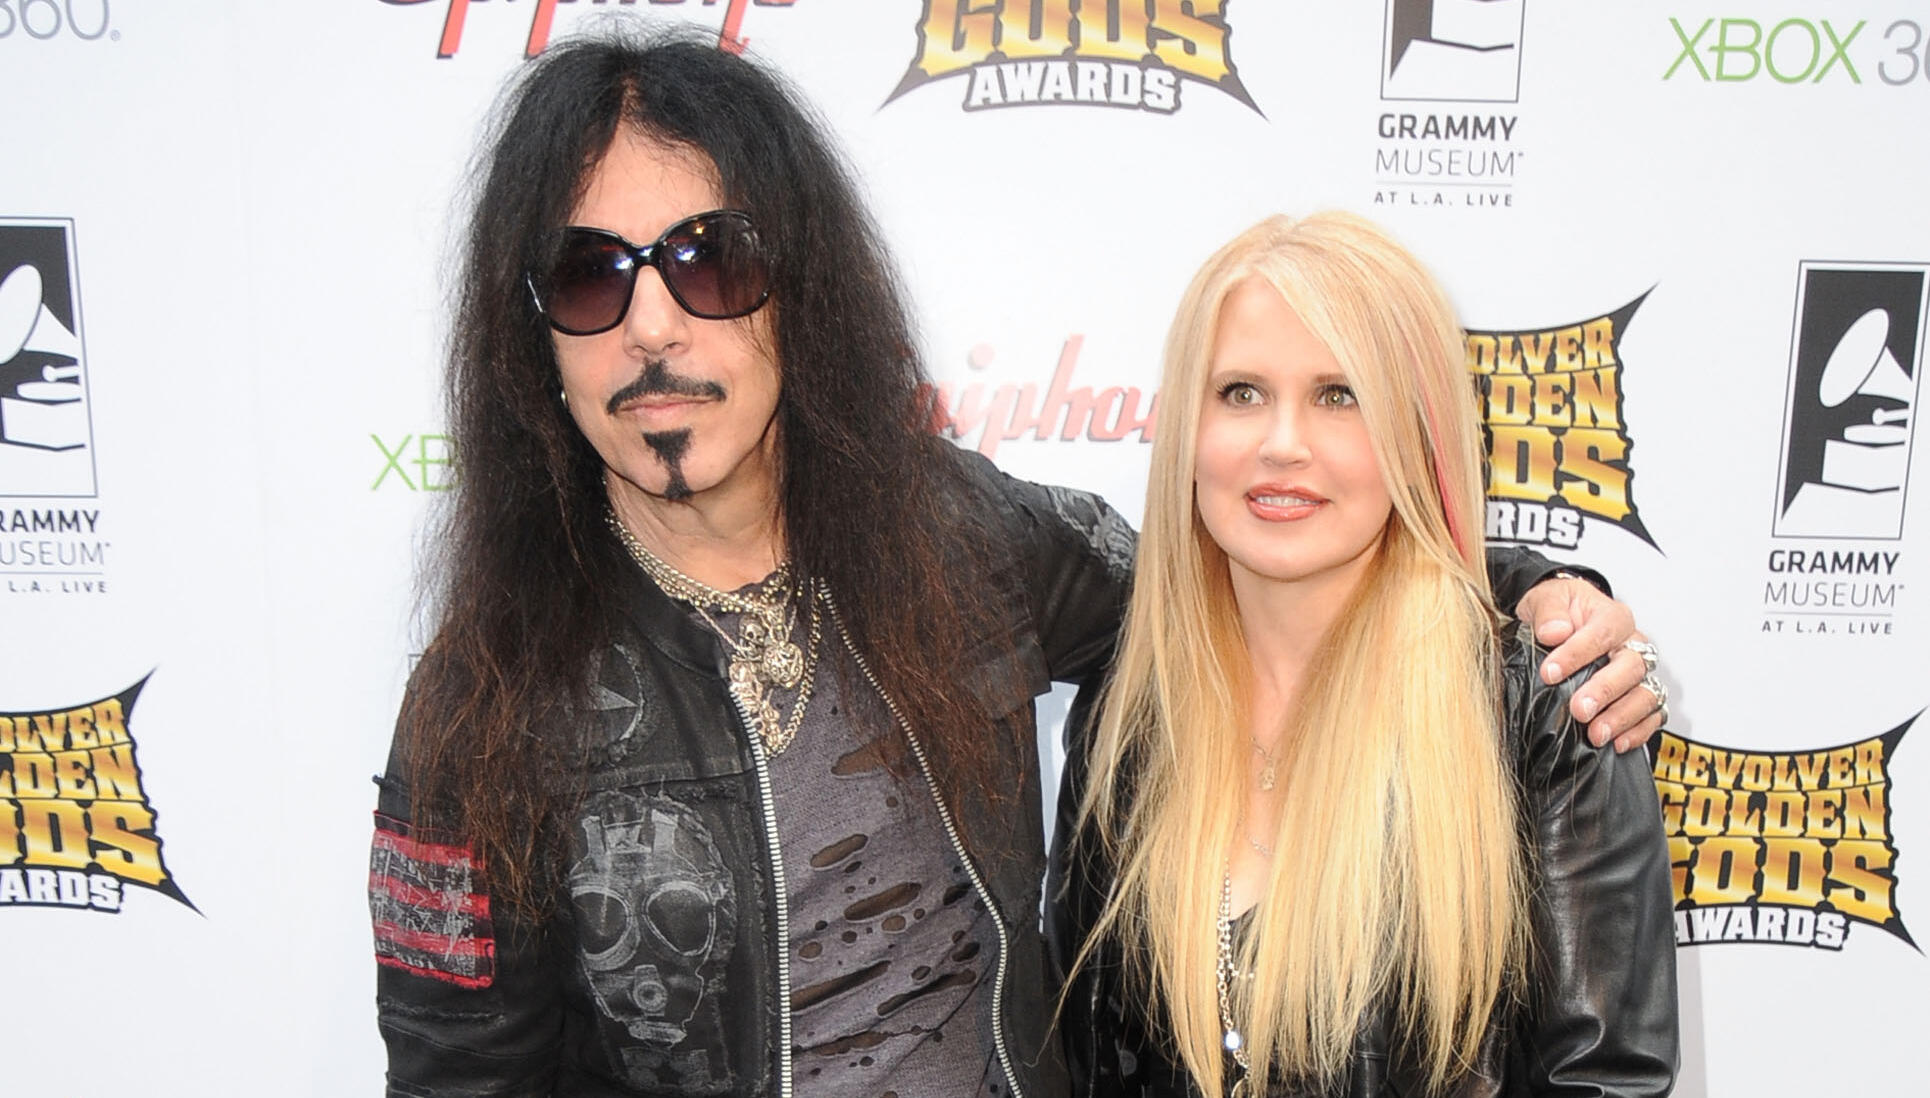 Quiet Riot's Frankie Banali Planned His Own Funeral Before Cancer Diagnosis